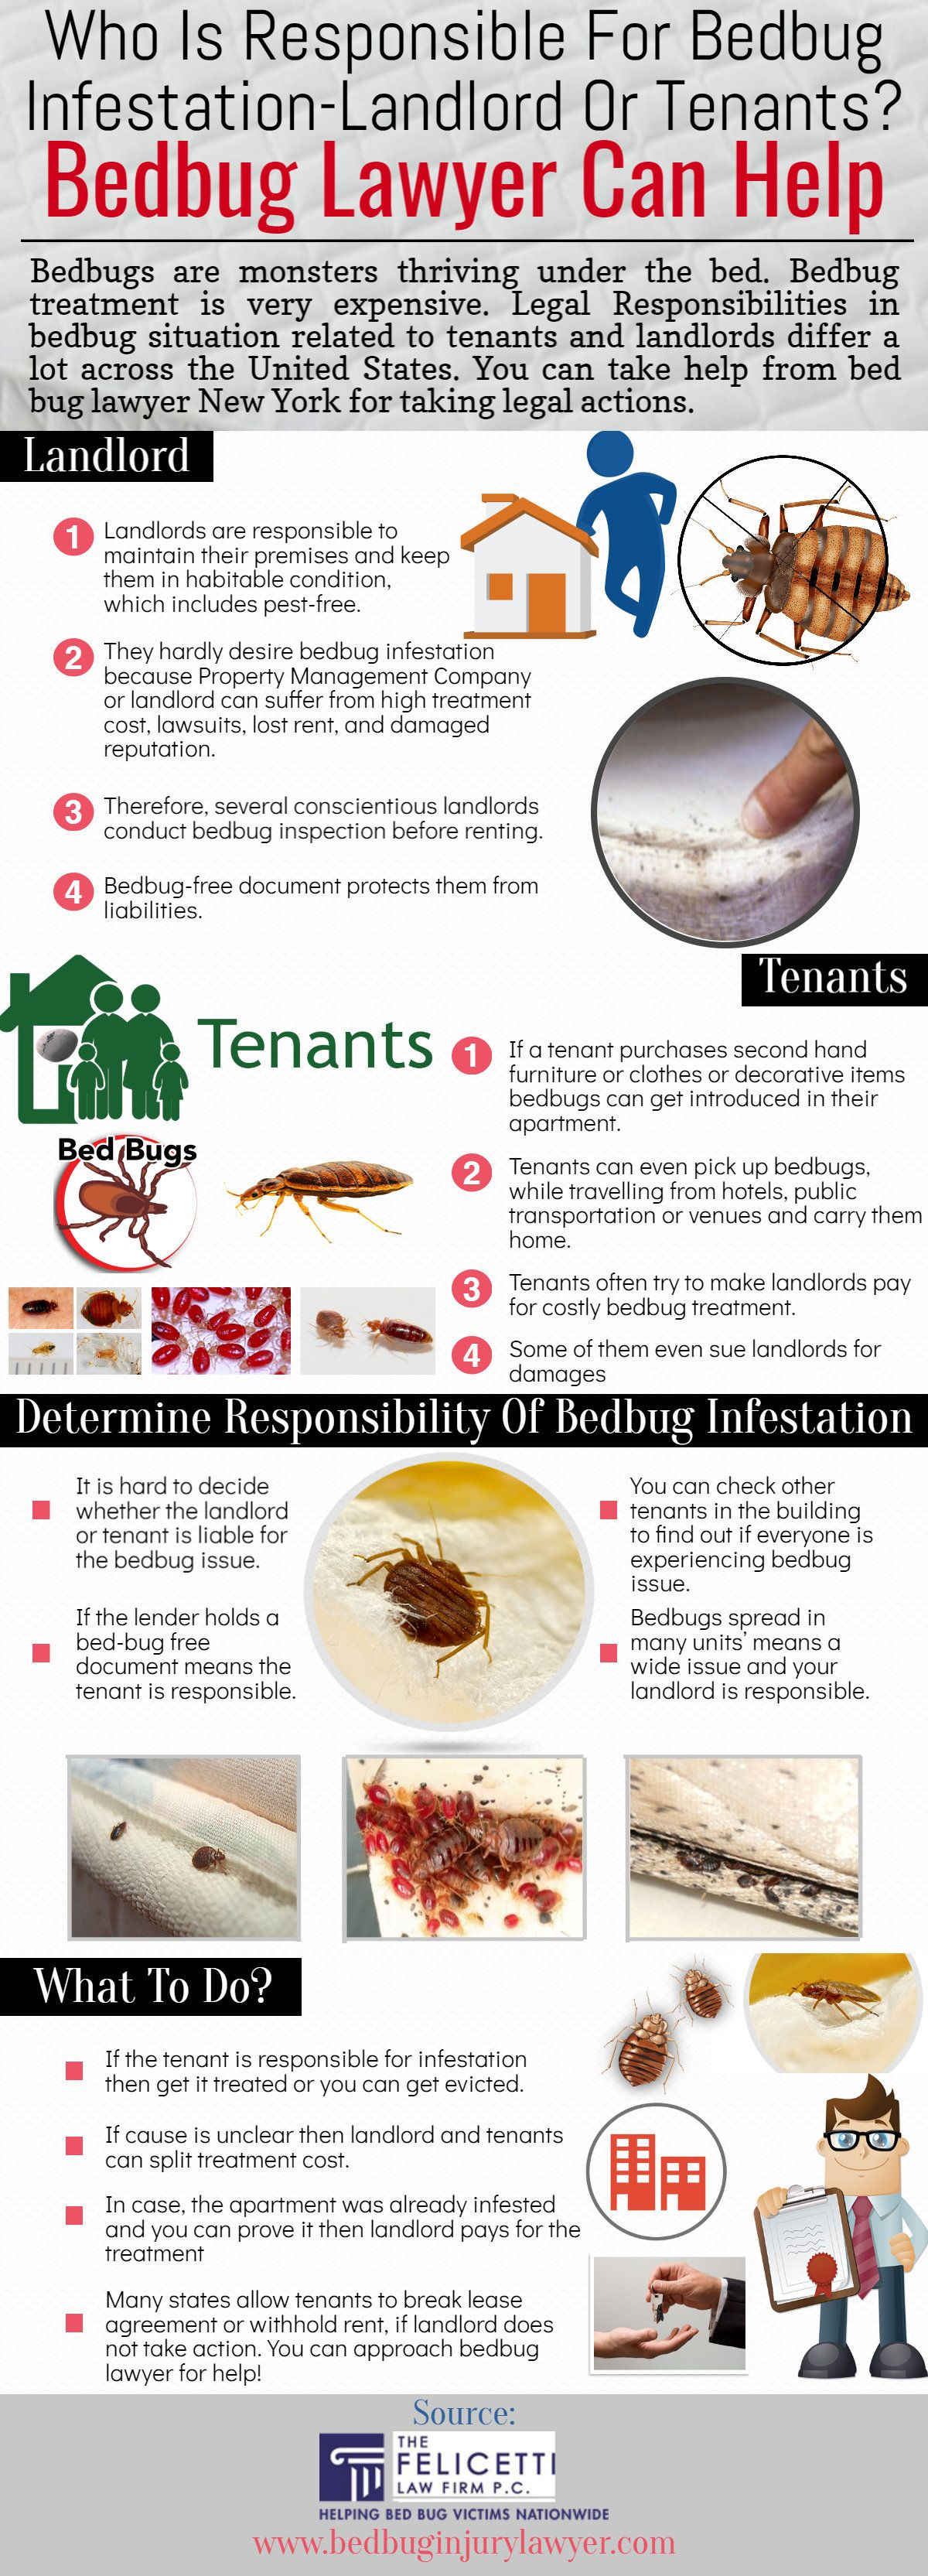 insect bed how cost does bedbug treatment a much control bug thumbnail sammykallbriert